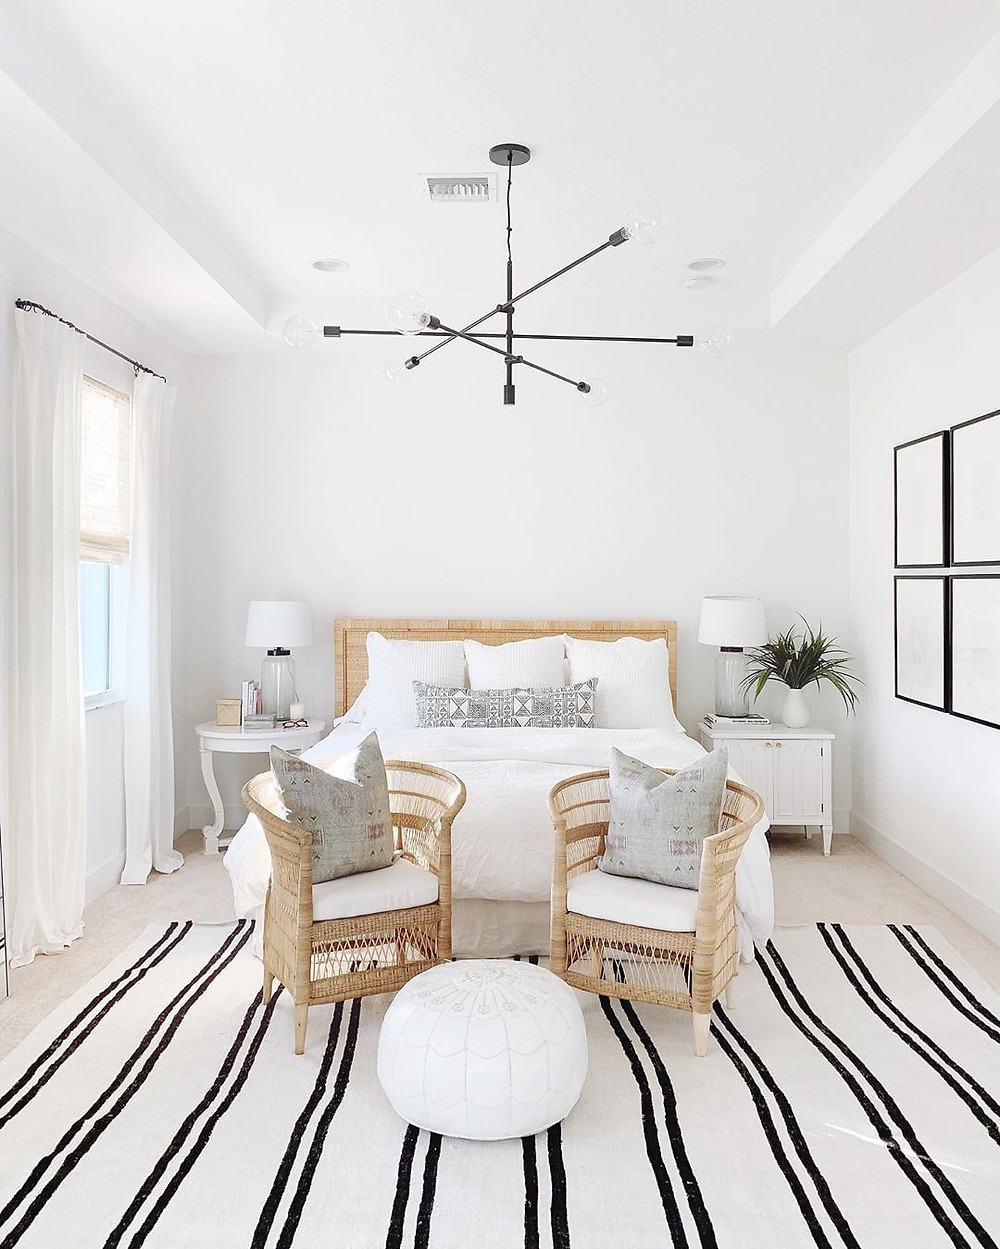 White bedroom interior design with striped area rug, ottoman and natural wicker chairs